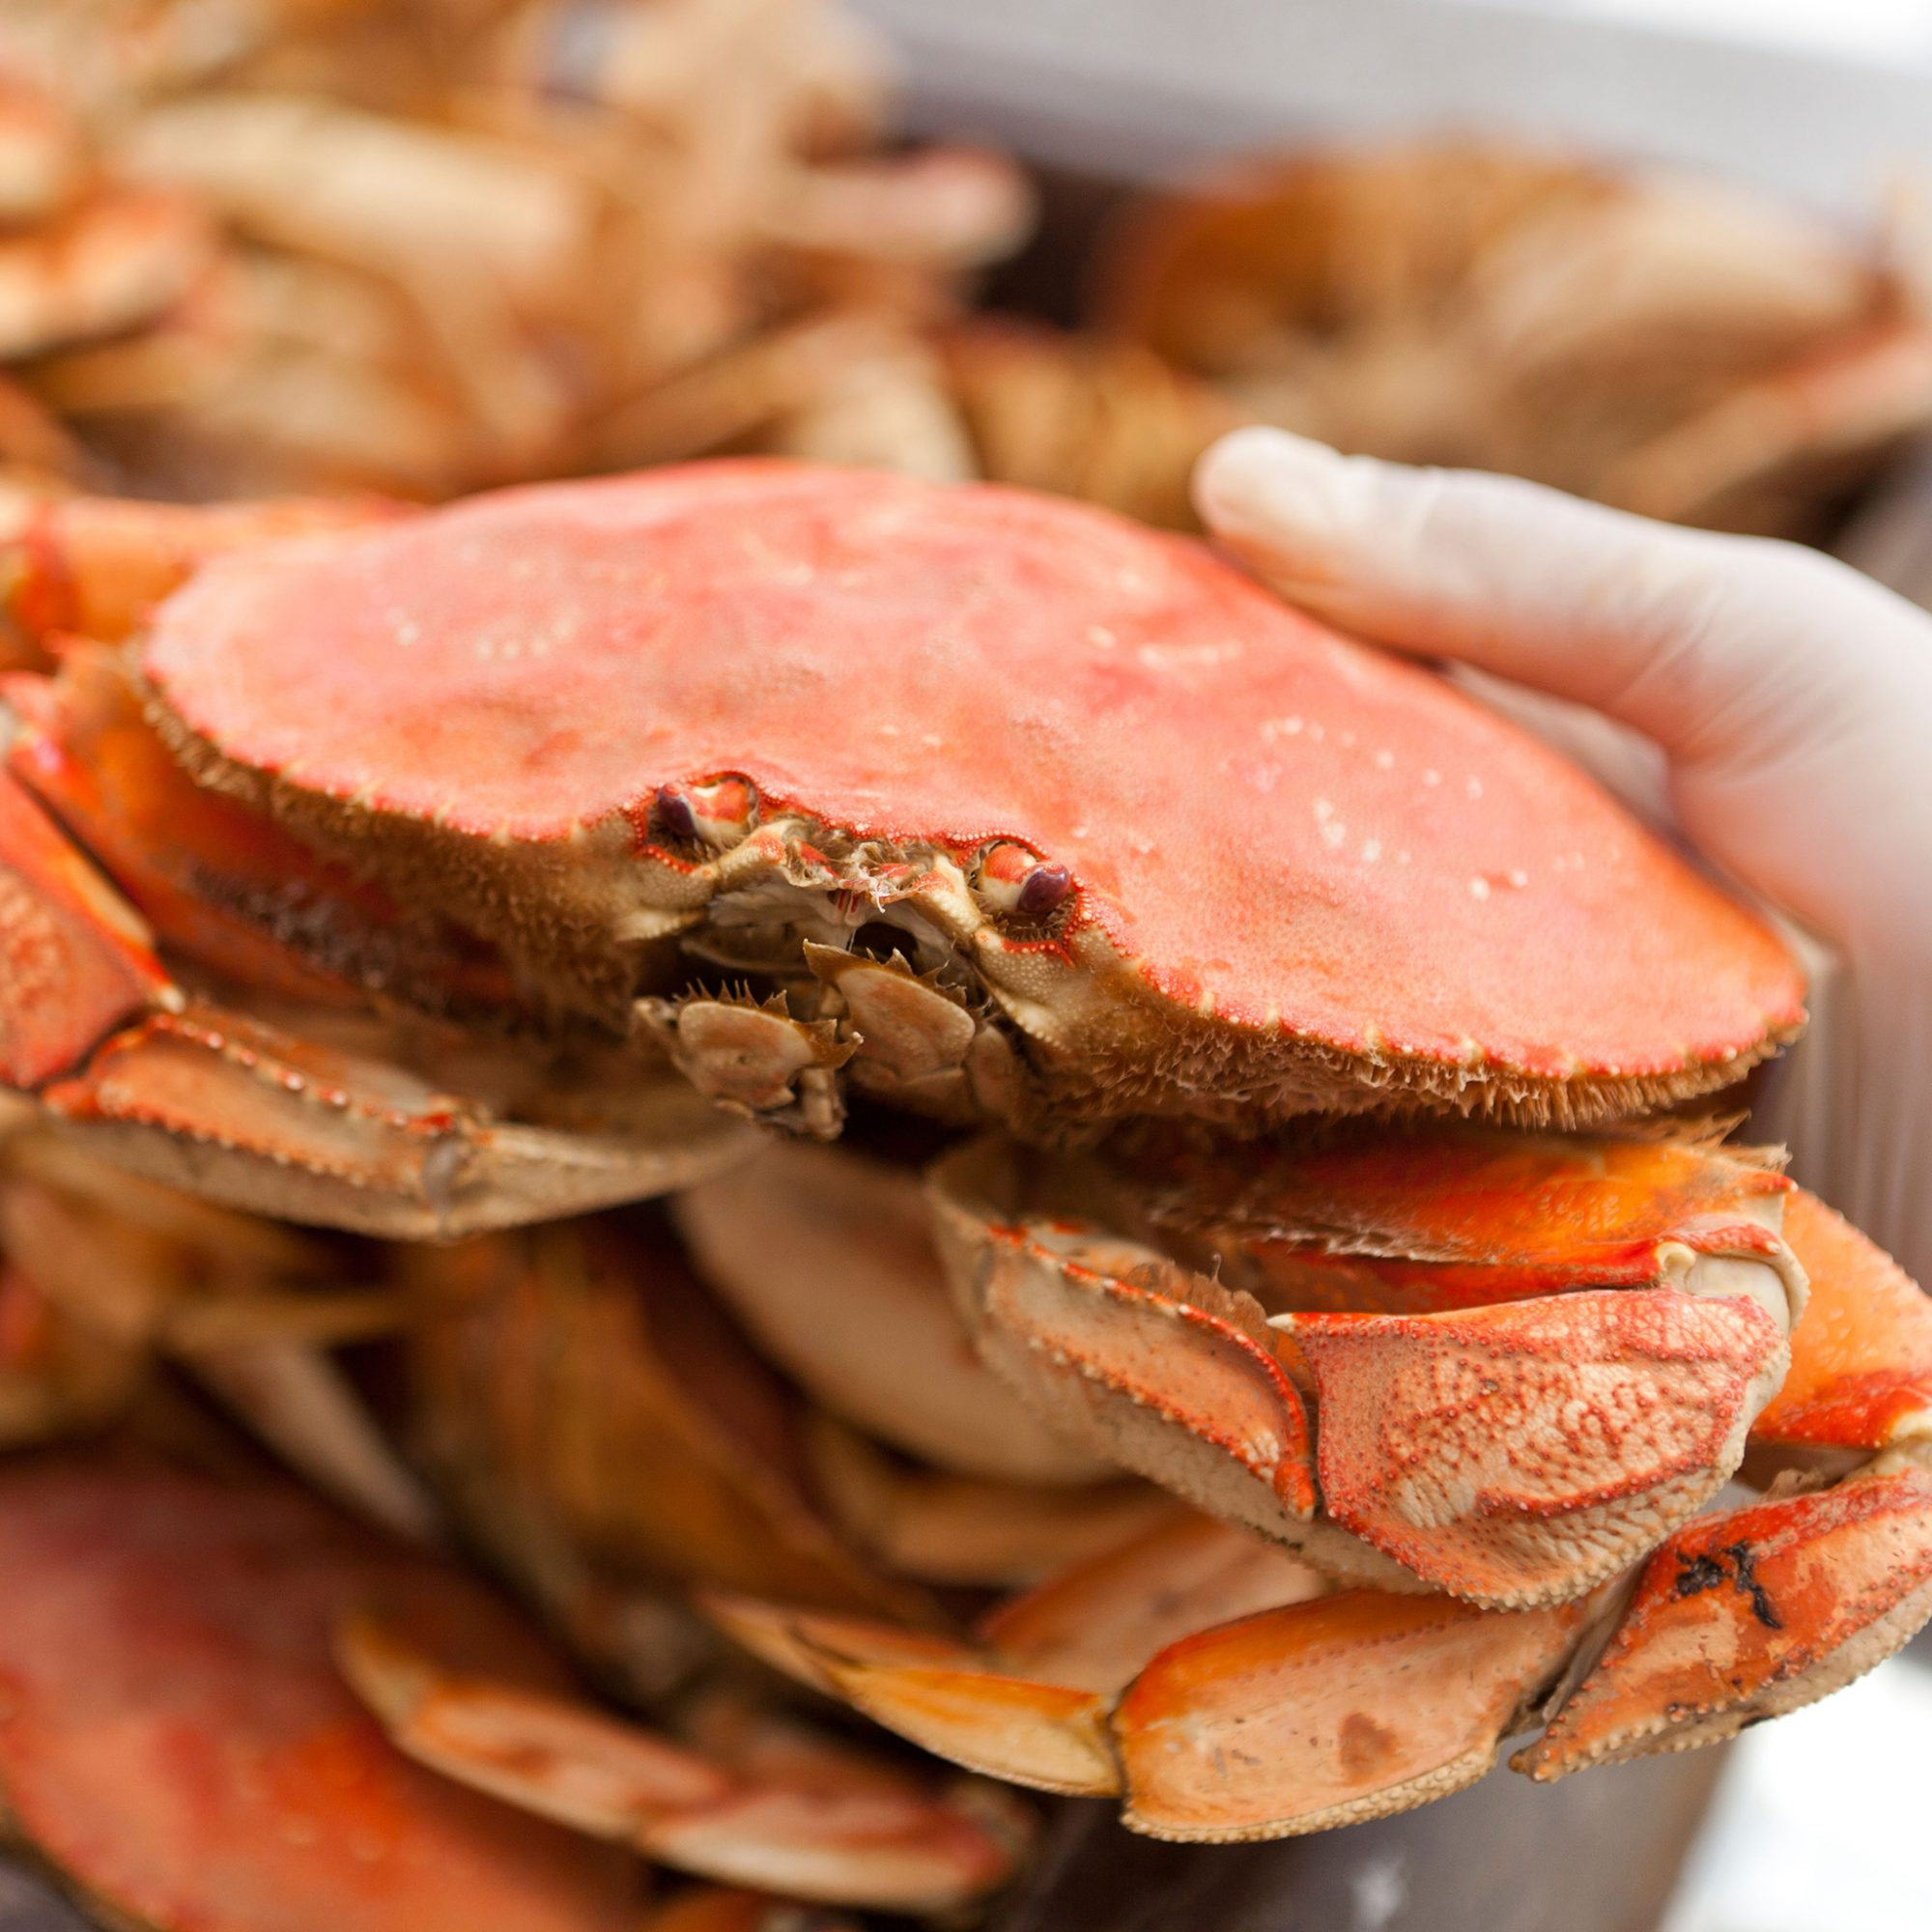 Climate Change May Be Coming for Our Dungeness Crabs